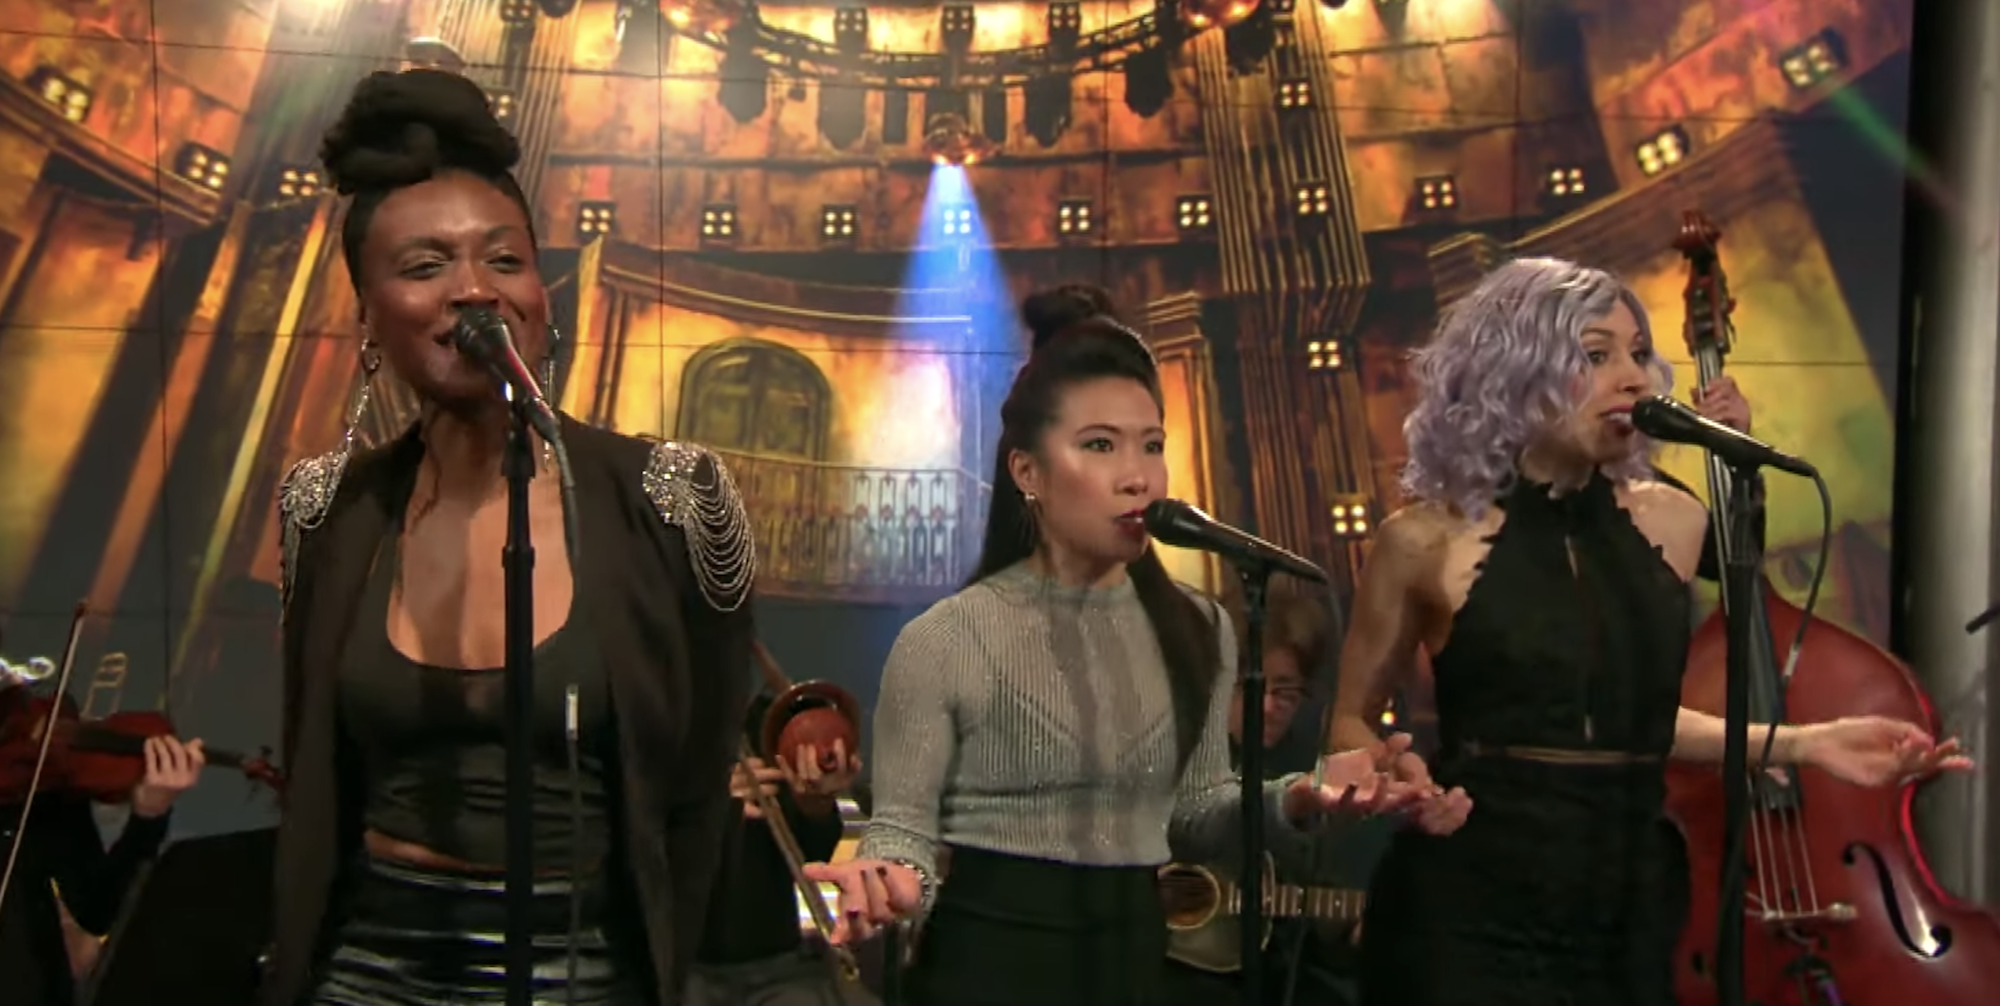 Watch 'Hadestown' Cast Perform Two Songs on 'CBS This